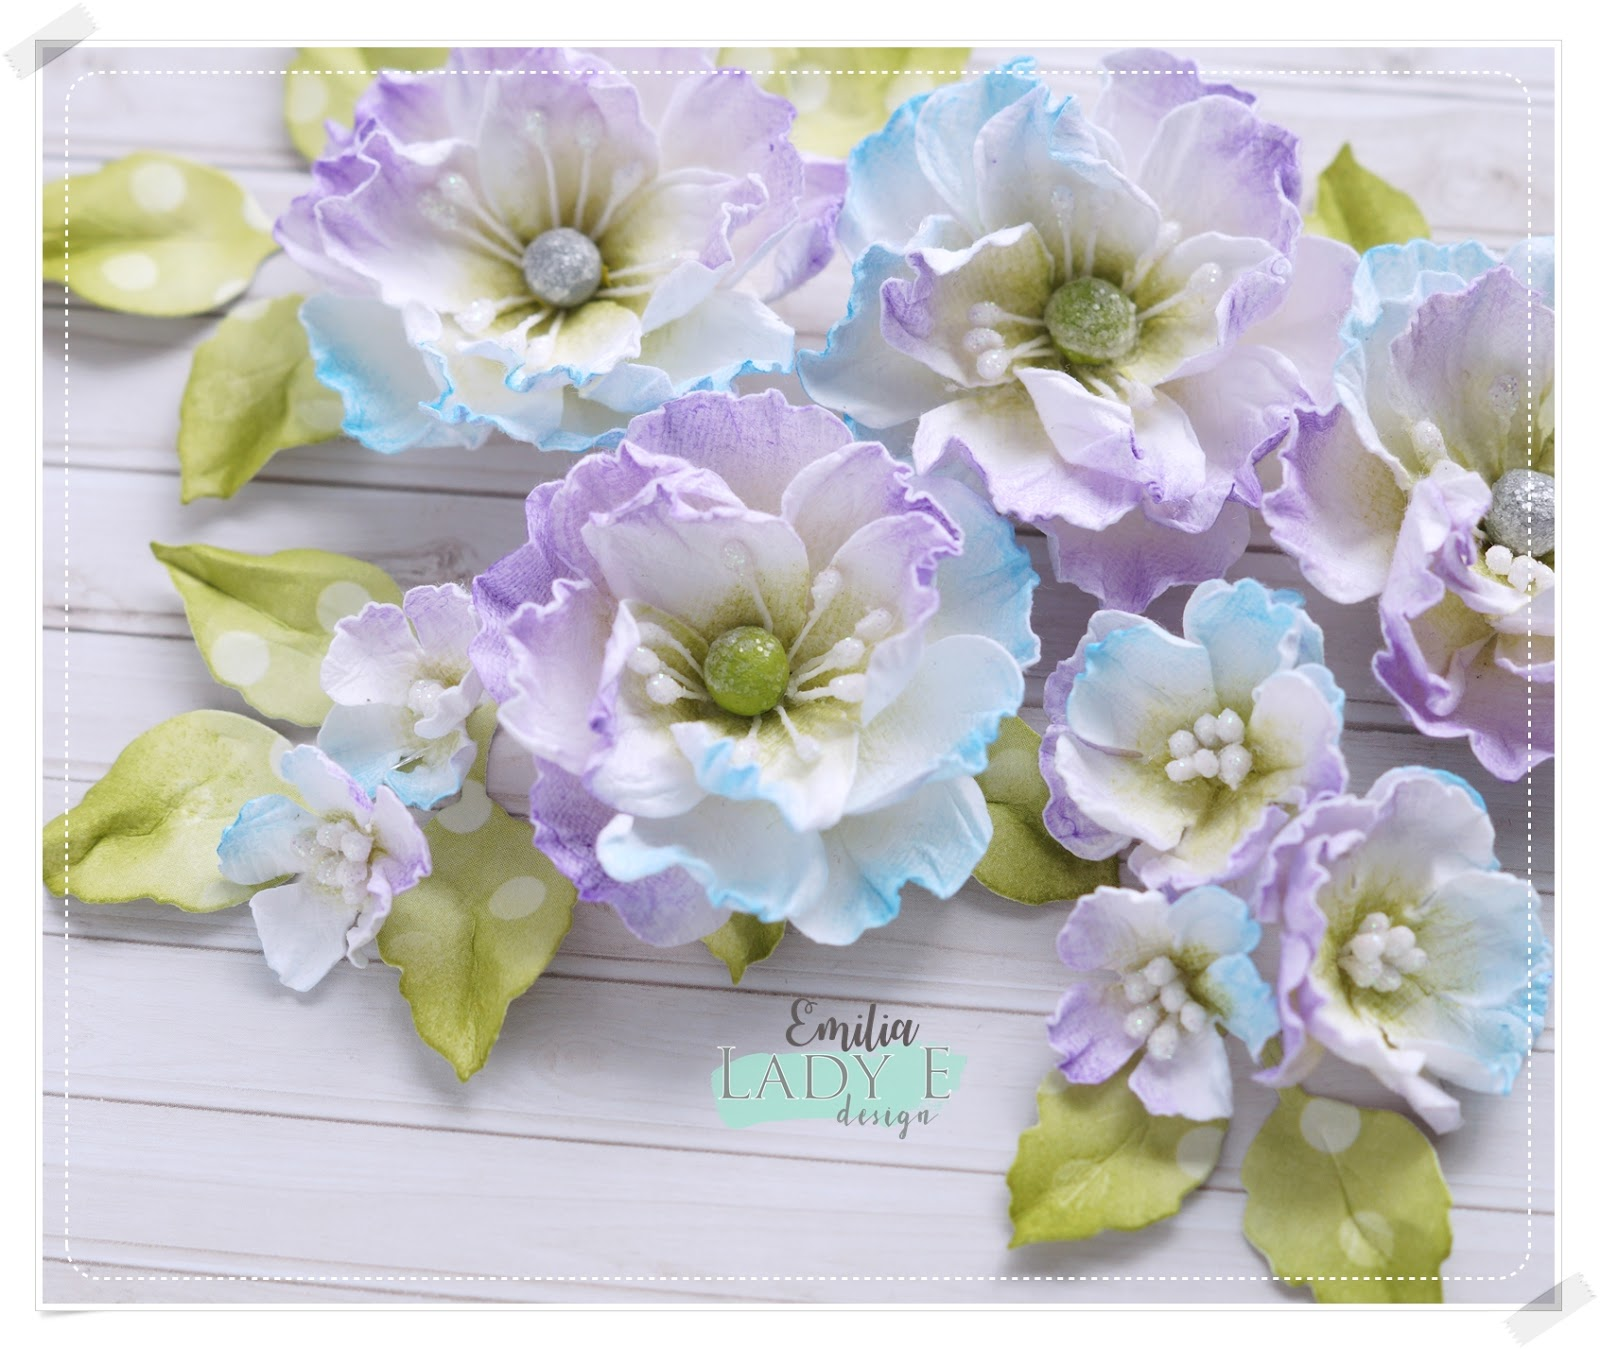 Mulberry Paper Flowers - Lady E Design